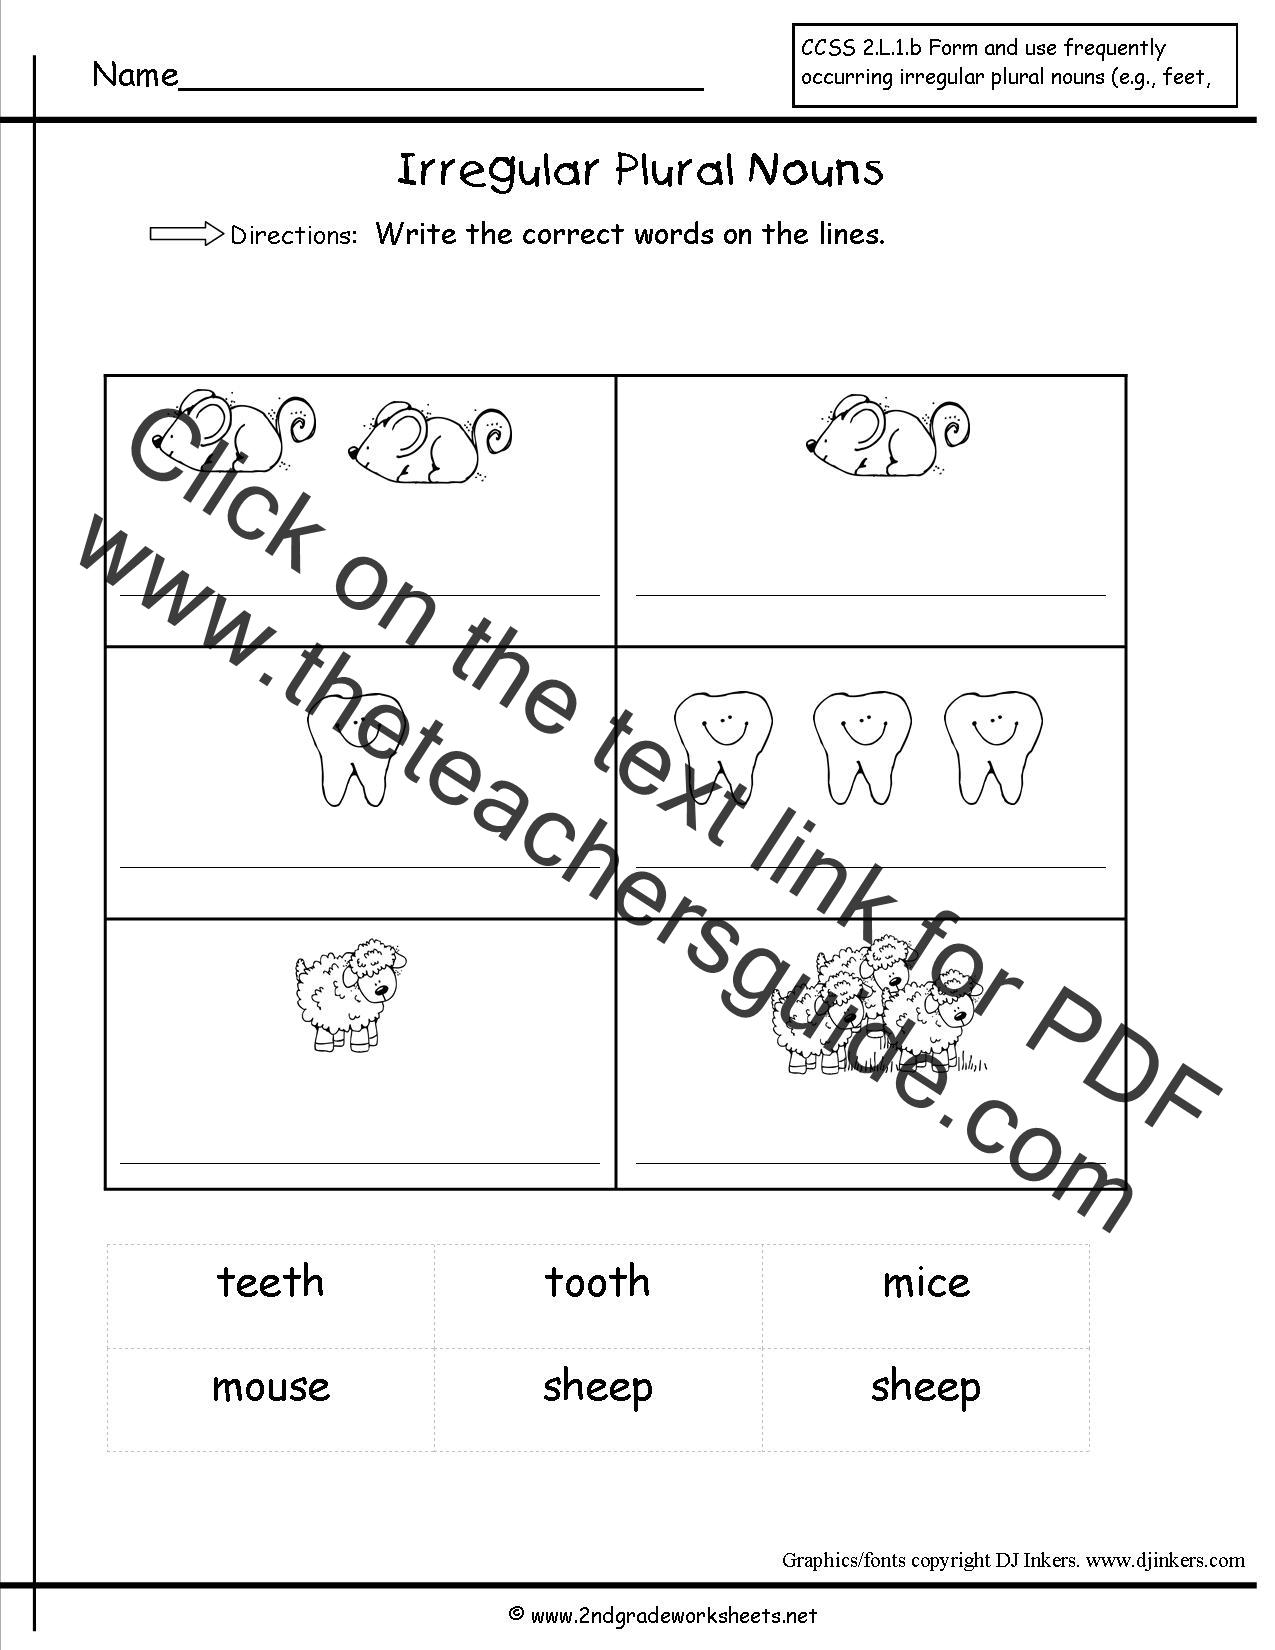 Singular and Plural Nouns Worksheets – Irregular Plural Nouns Worksheet 4th Grade